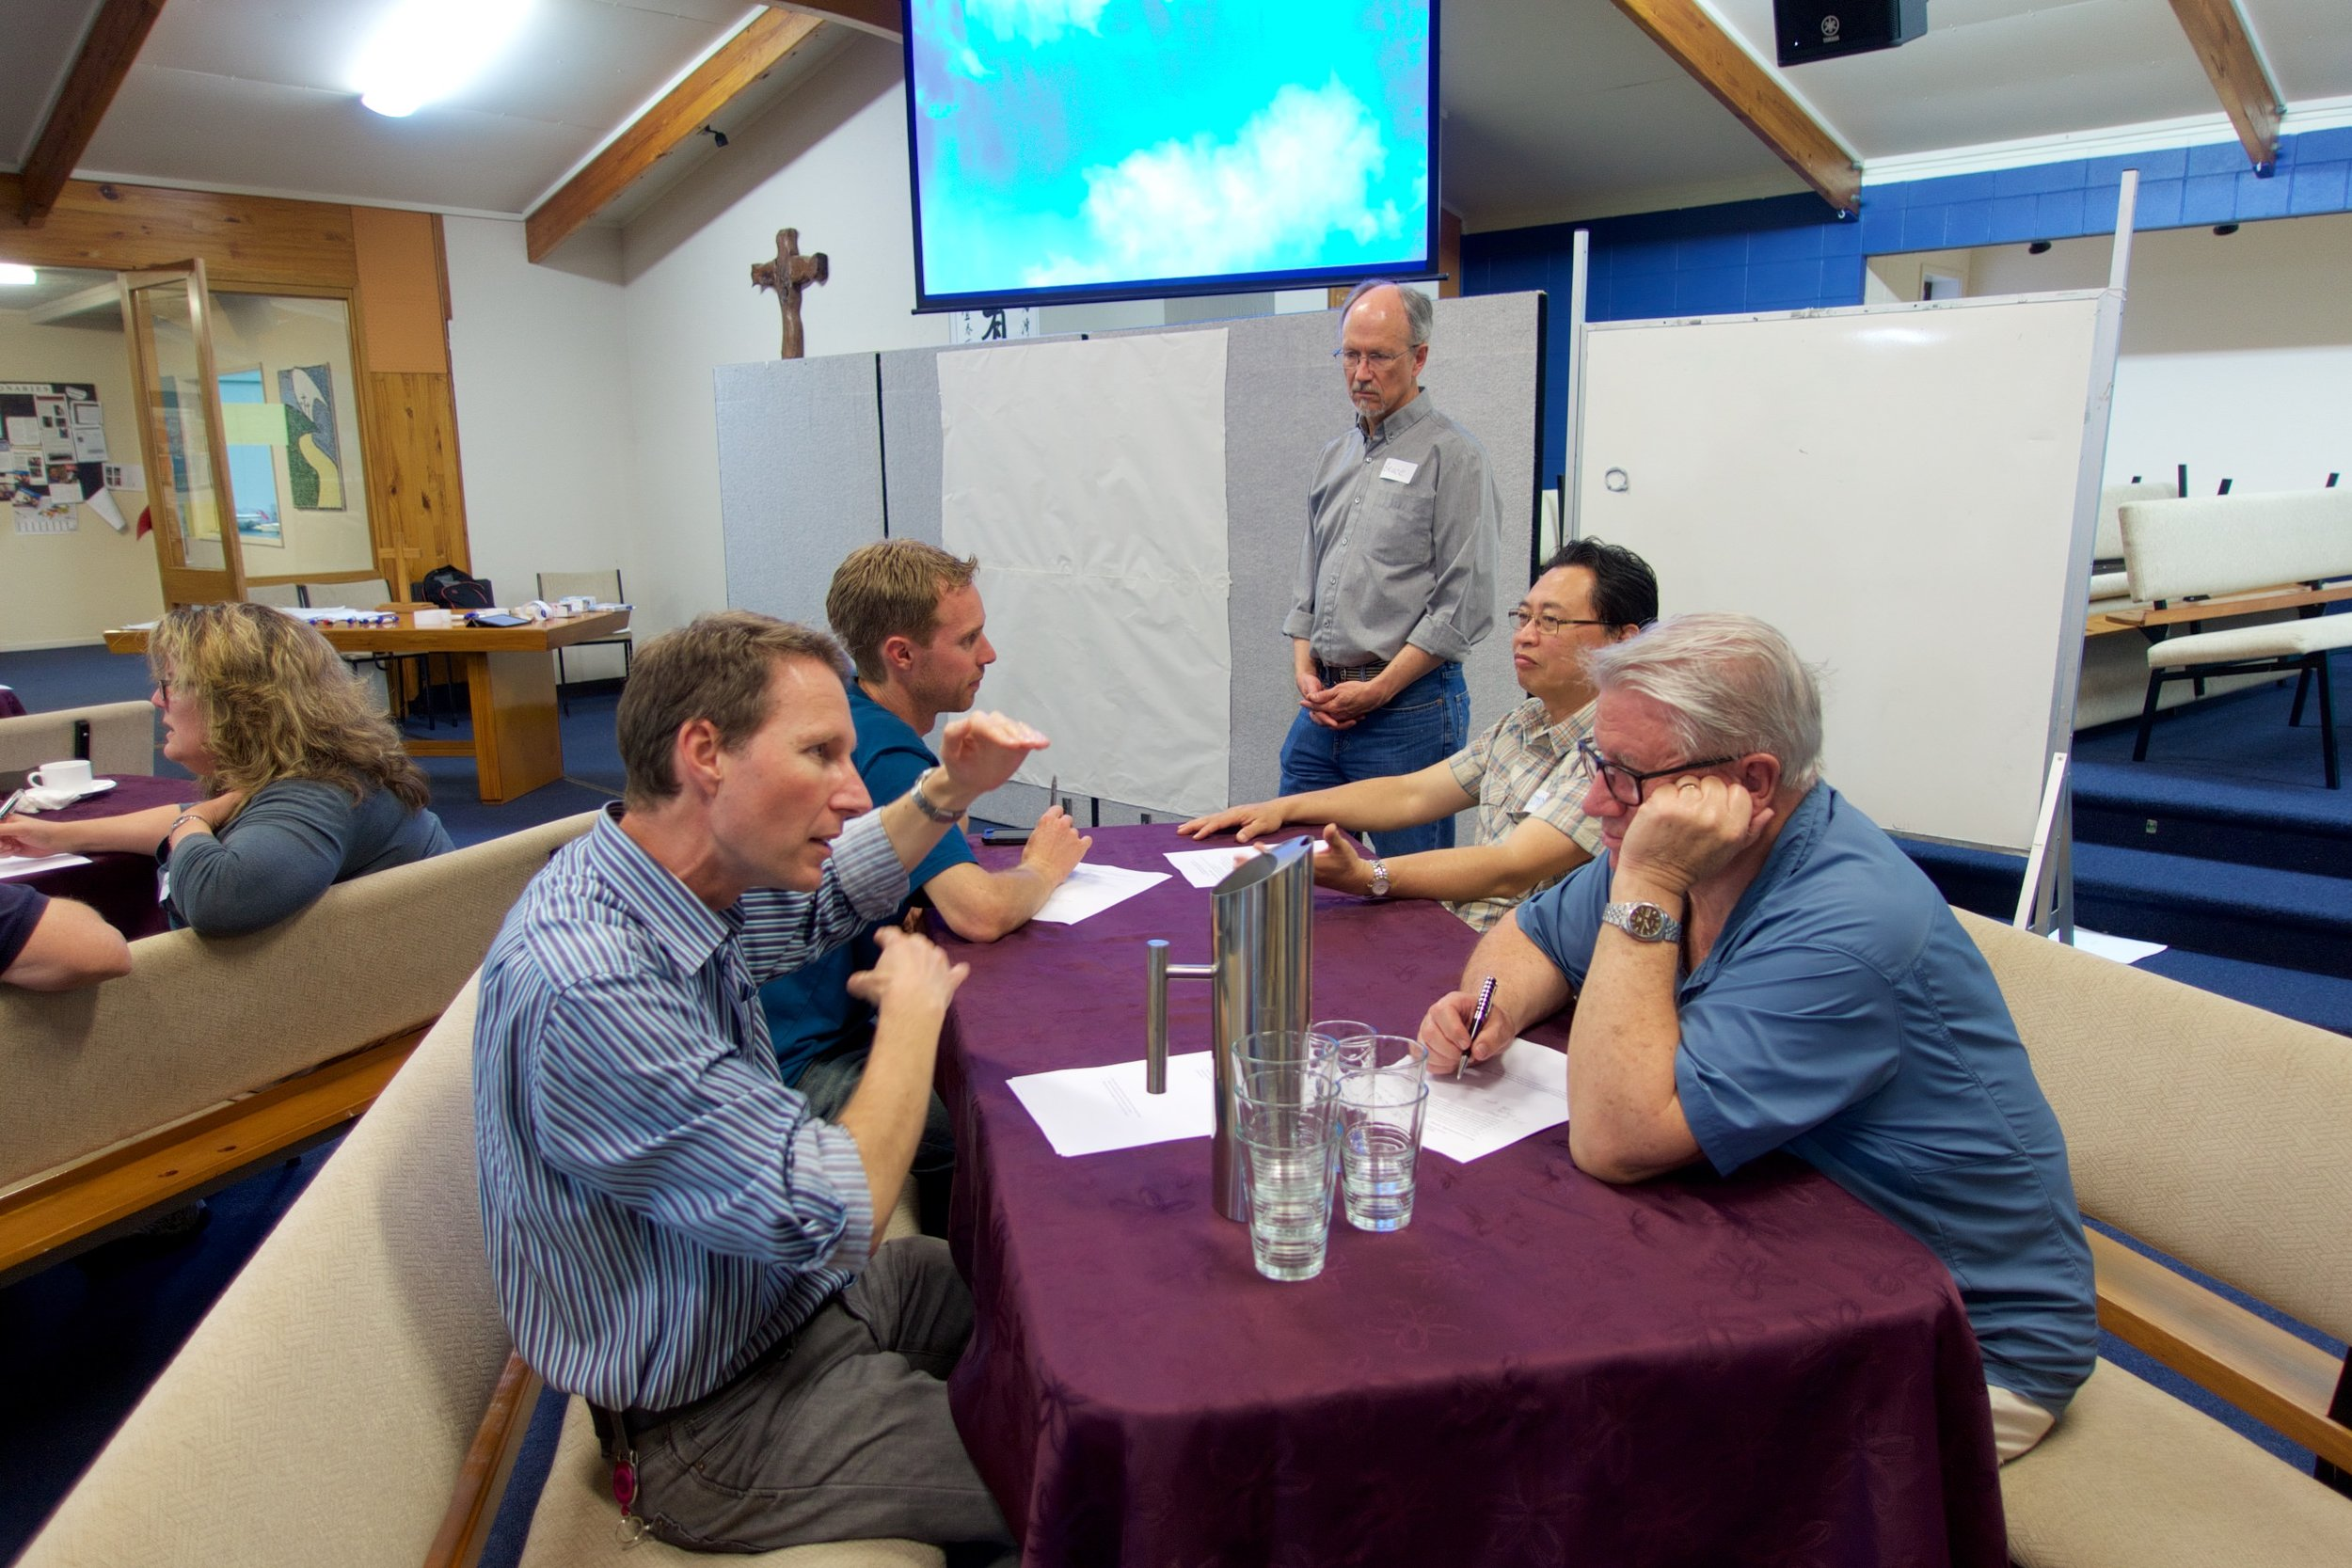 Working with a church in Auckland to (re)discover how to help the congregation experience God's presence through worship.